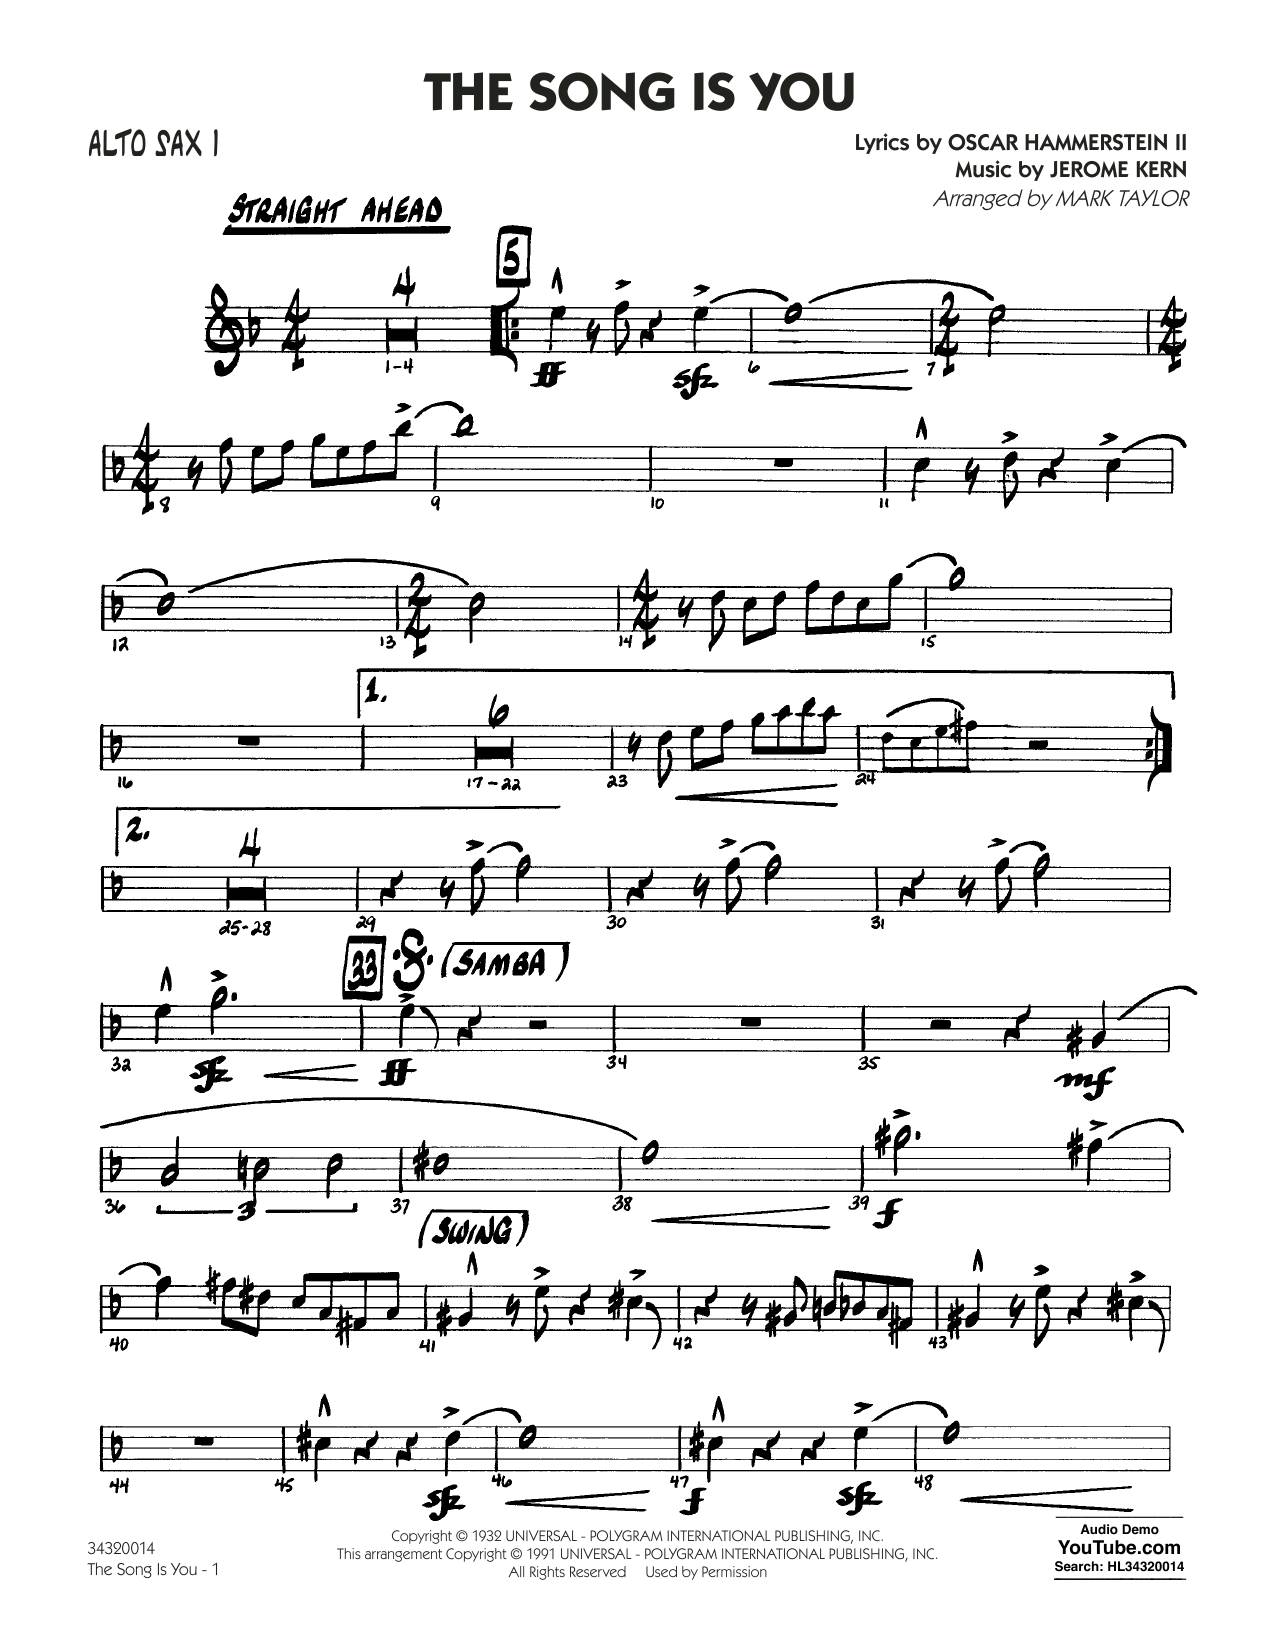 Mark Taylor The Song Is You - Alto Sax 1 sheet music notes and chords. Download Printable PDF.